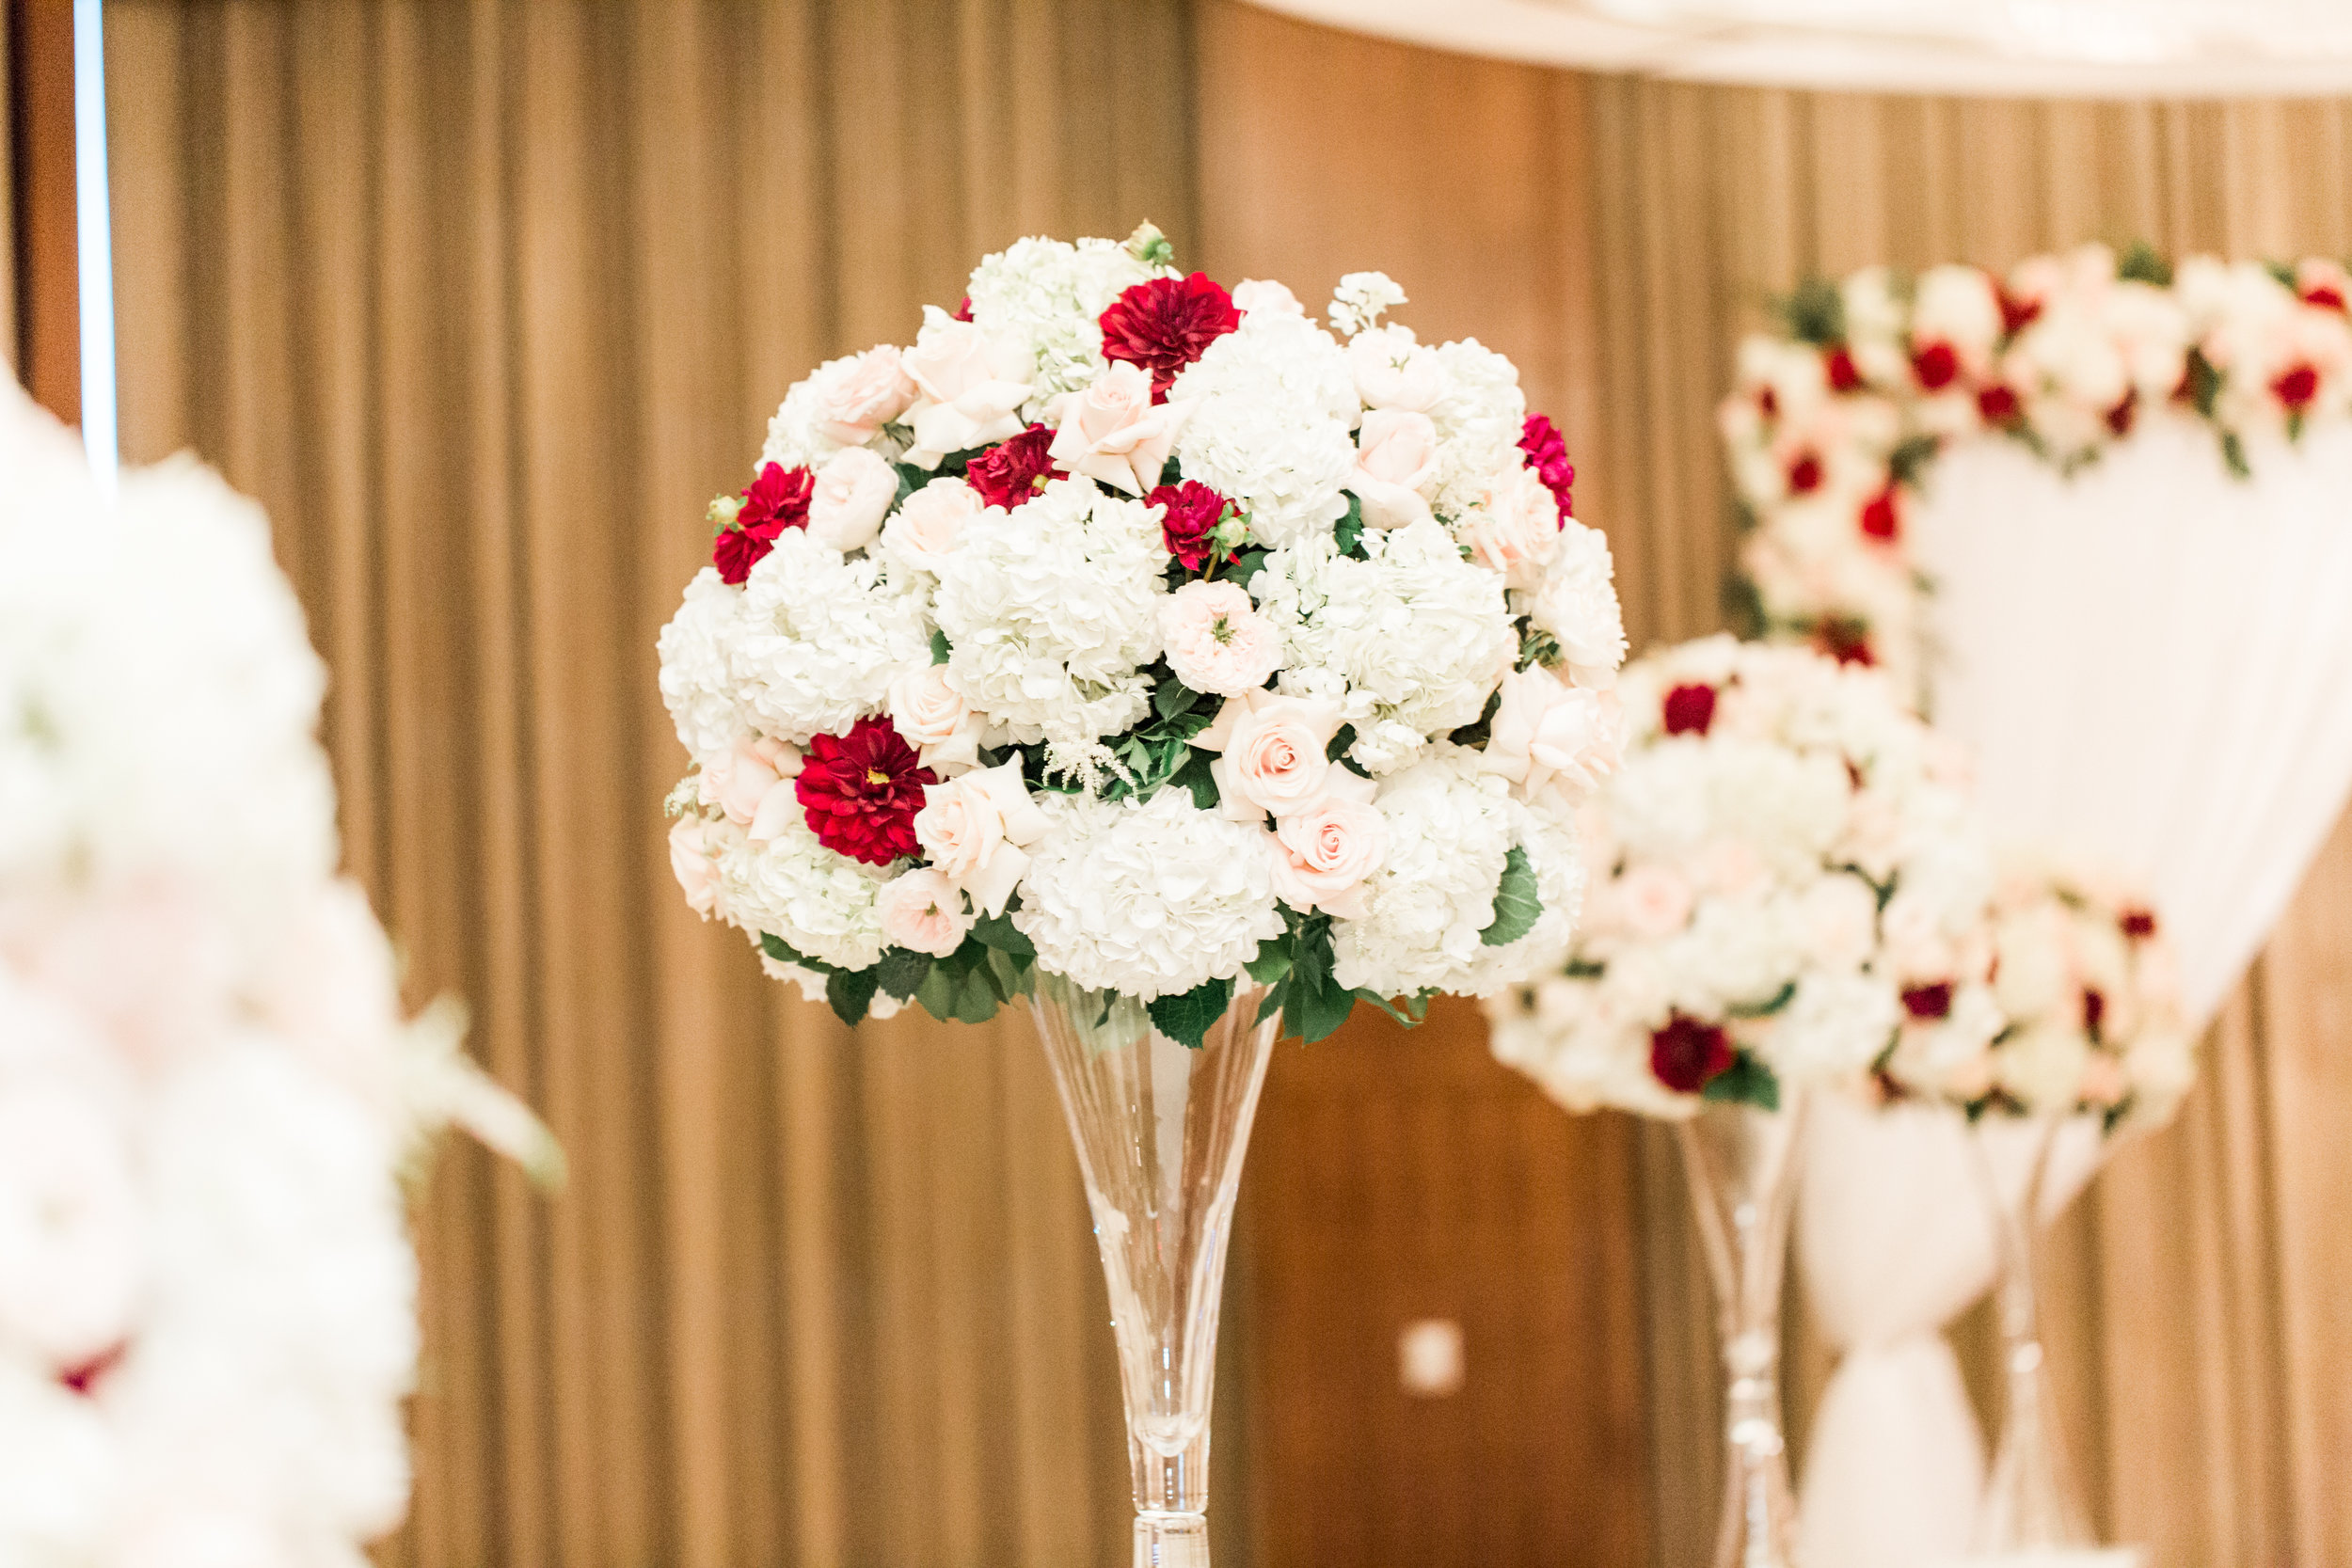 red and white wedding flowers.Luxury wedding at the Mandarin Oriental with a color scheme of white, blush, and pops of wine red produced by Las Vegas Wedding Planner Andrea Eppolito with photos by Stephen Salazar Photography.